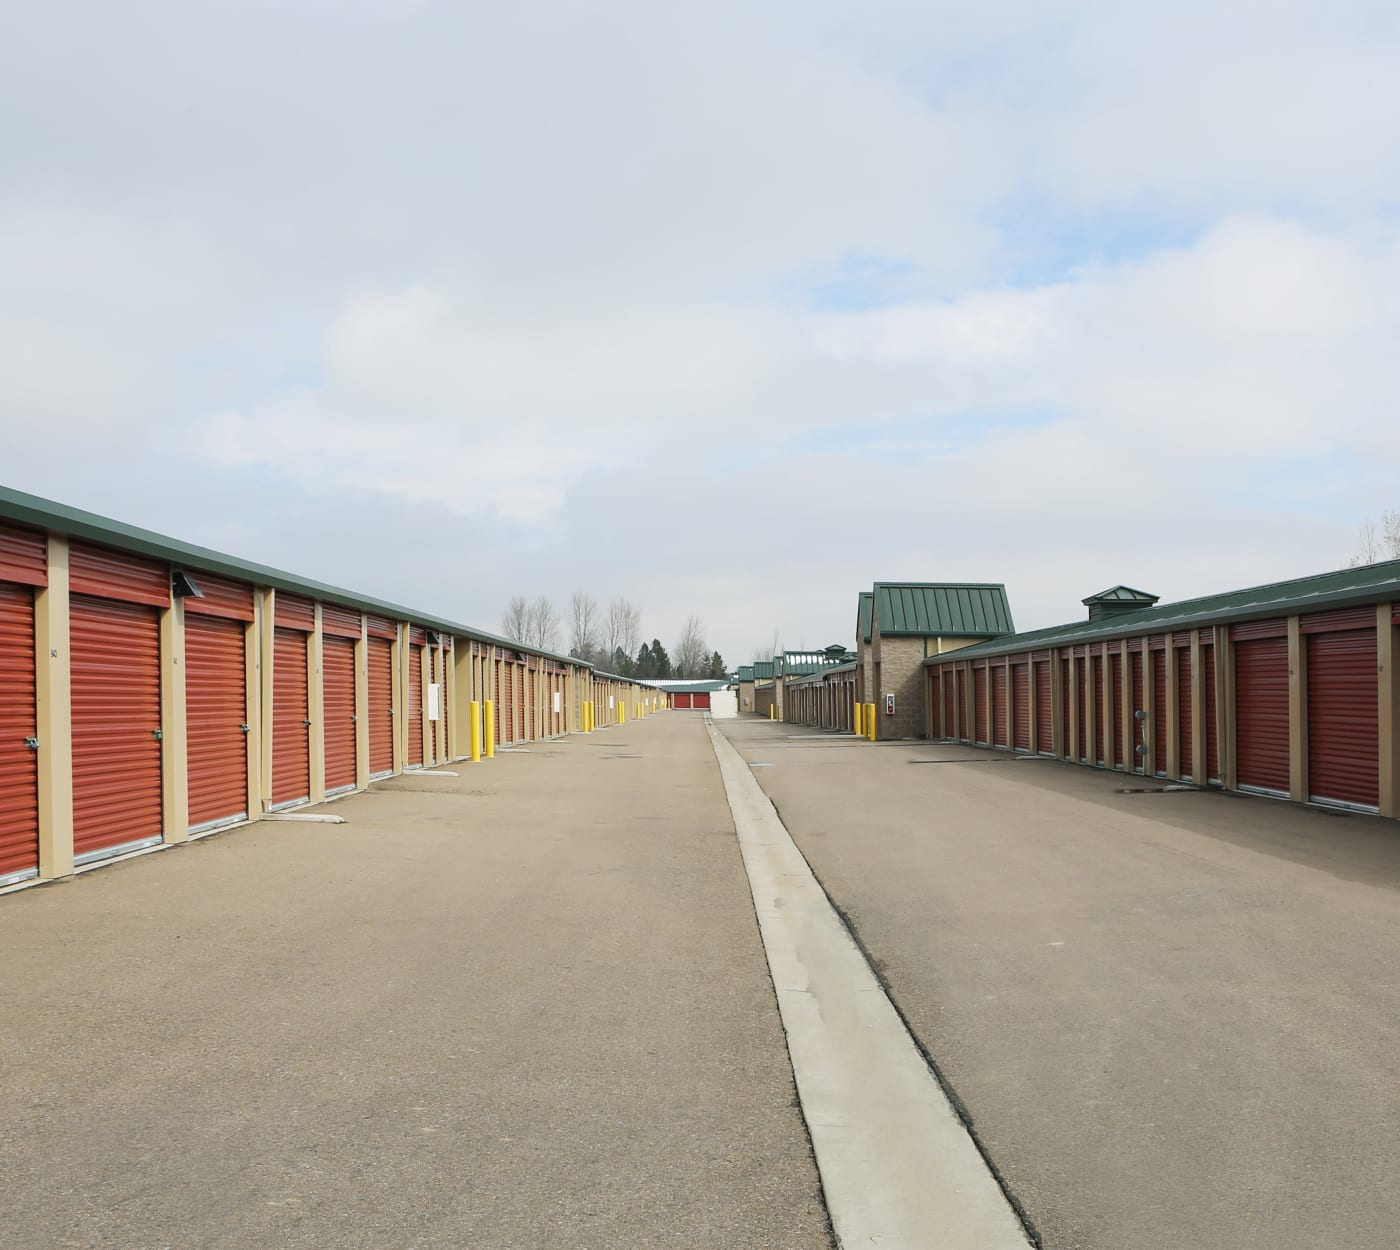 Storage Unit Cost Self Storage Longmont Co Storage Unit Sizes And Prices